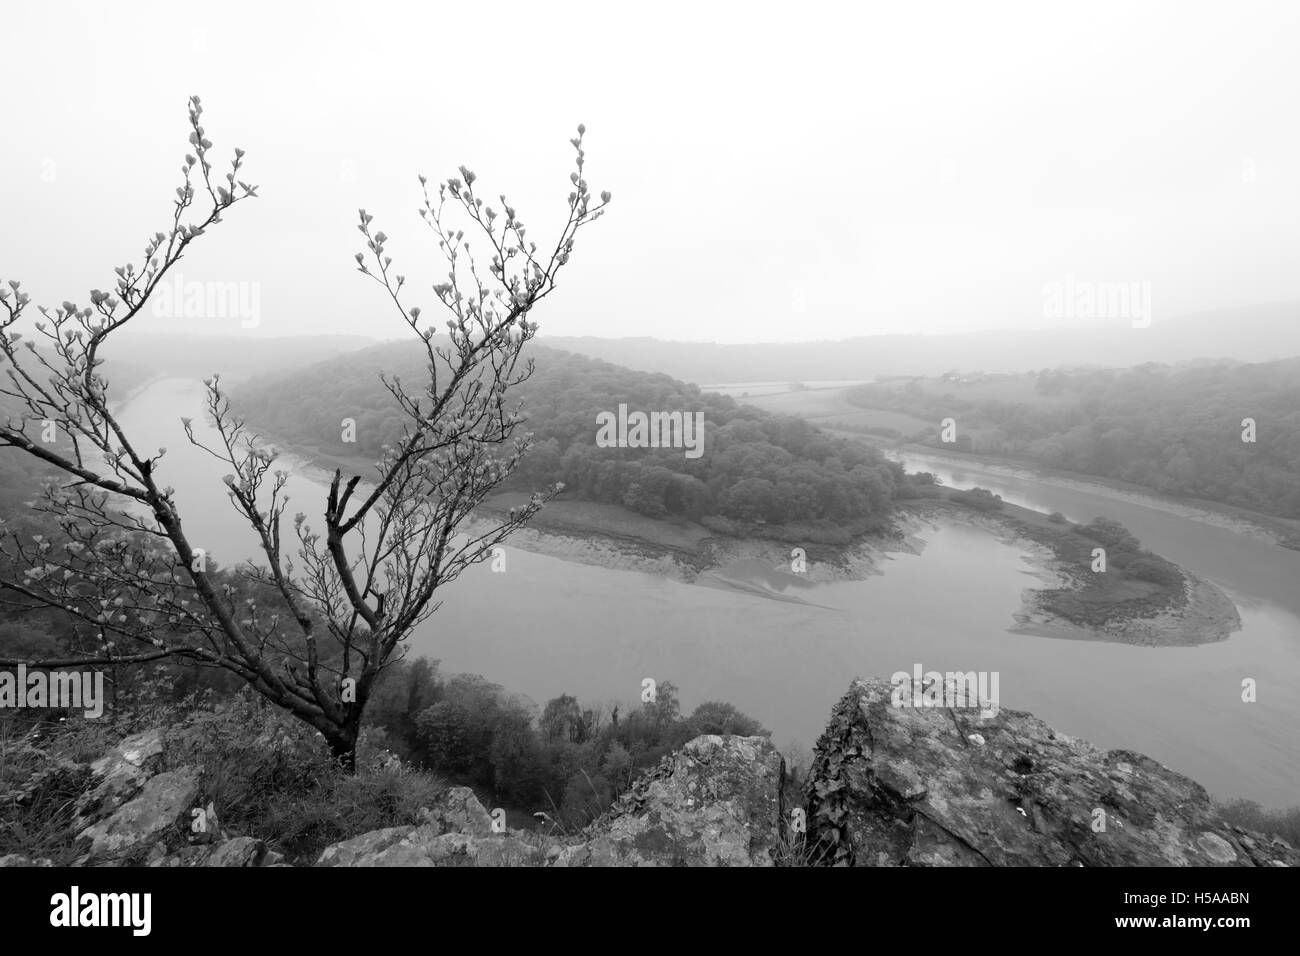 River Wye from Wintour's Leap, Broadrock, Gloucestershire, England, UK - Stock Image